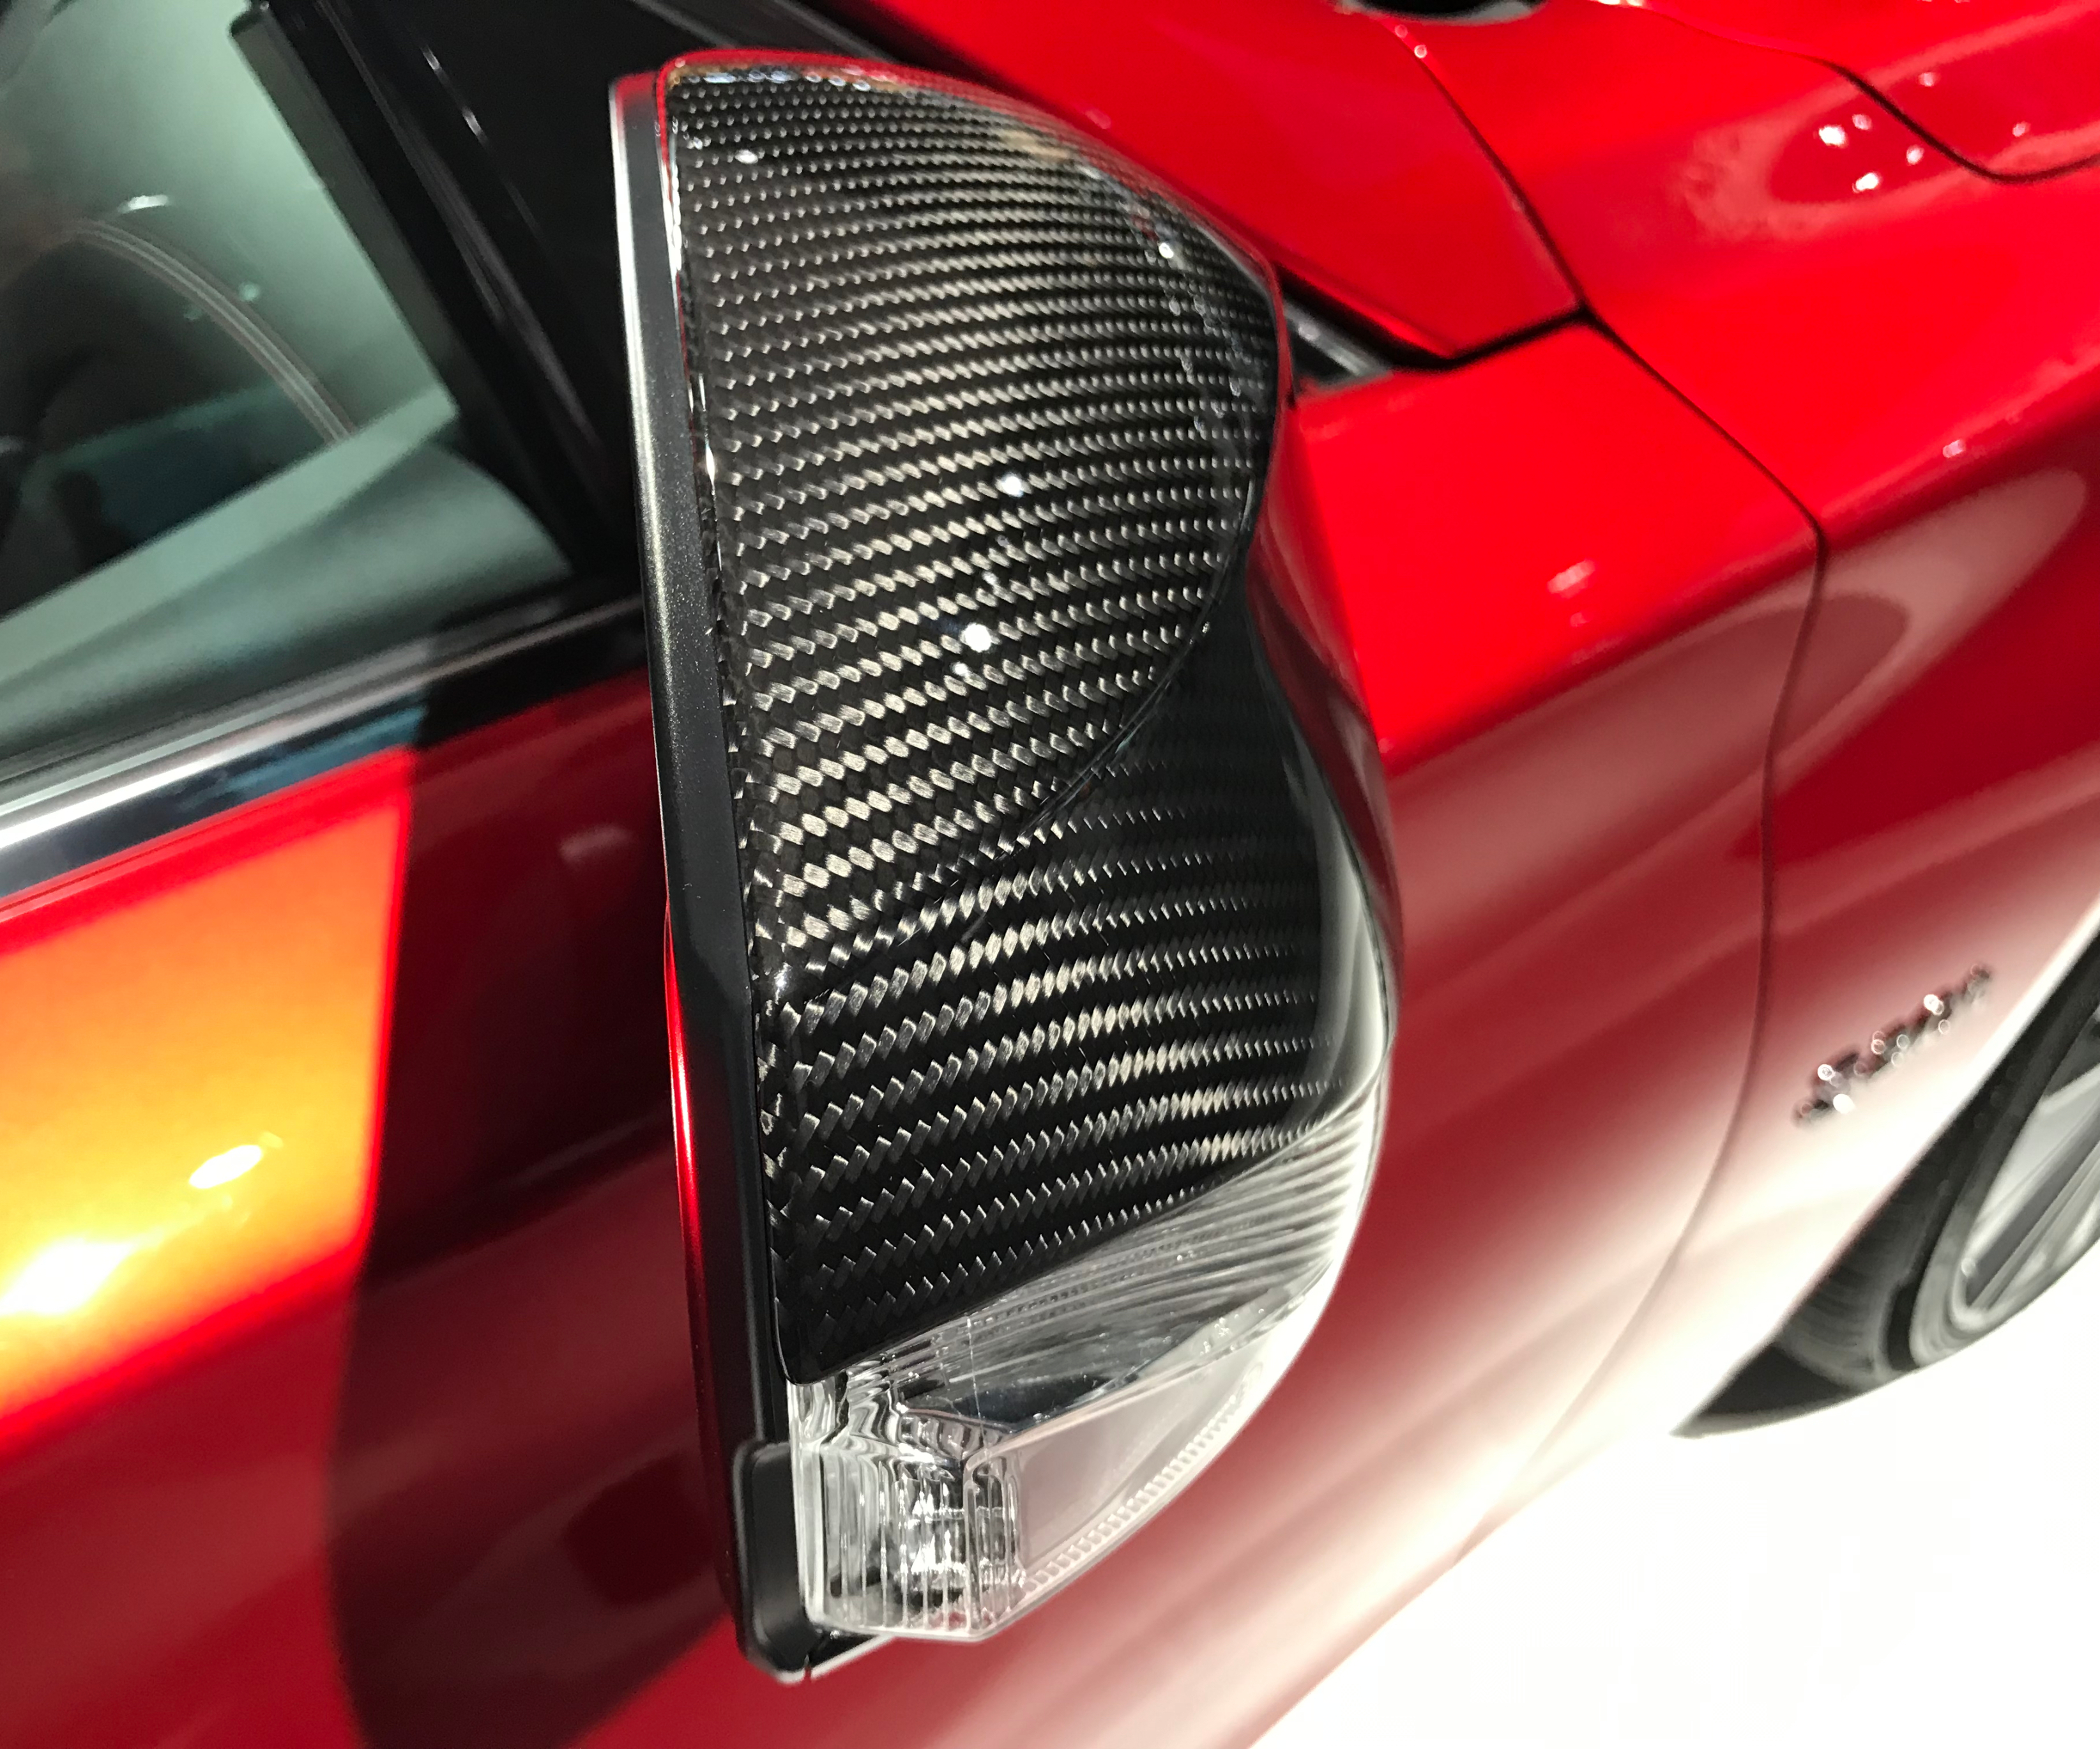 carbon fiber, automotive composites